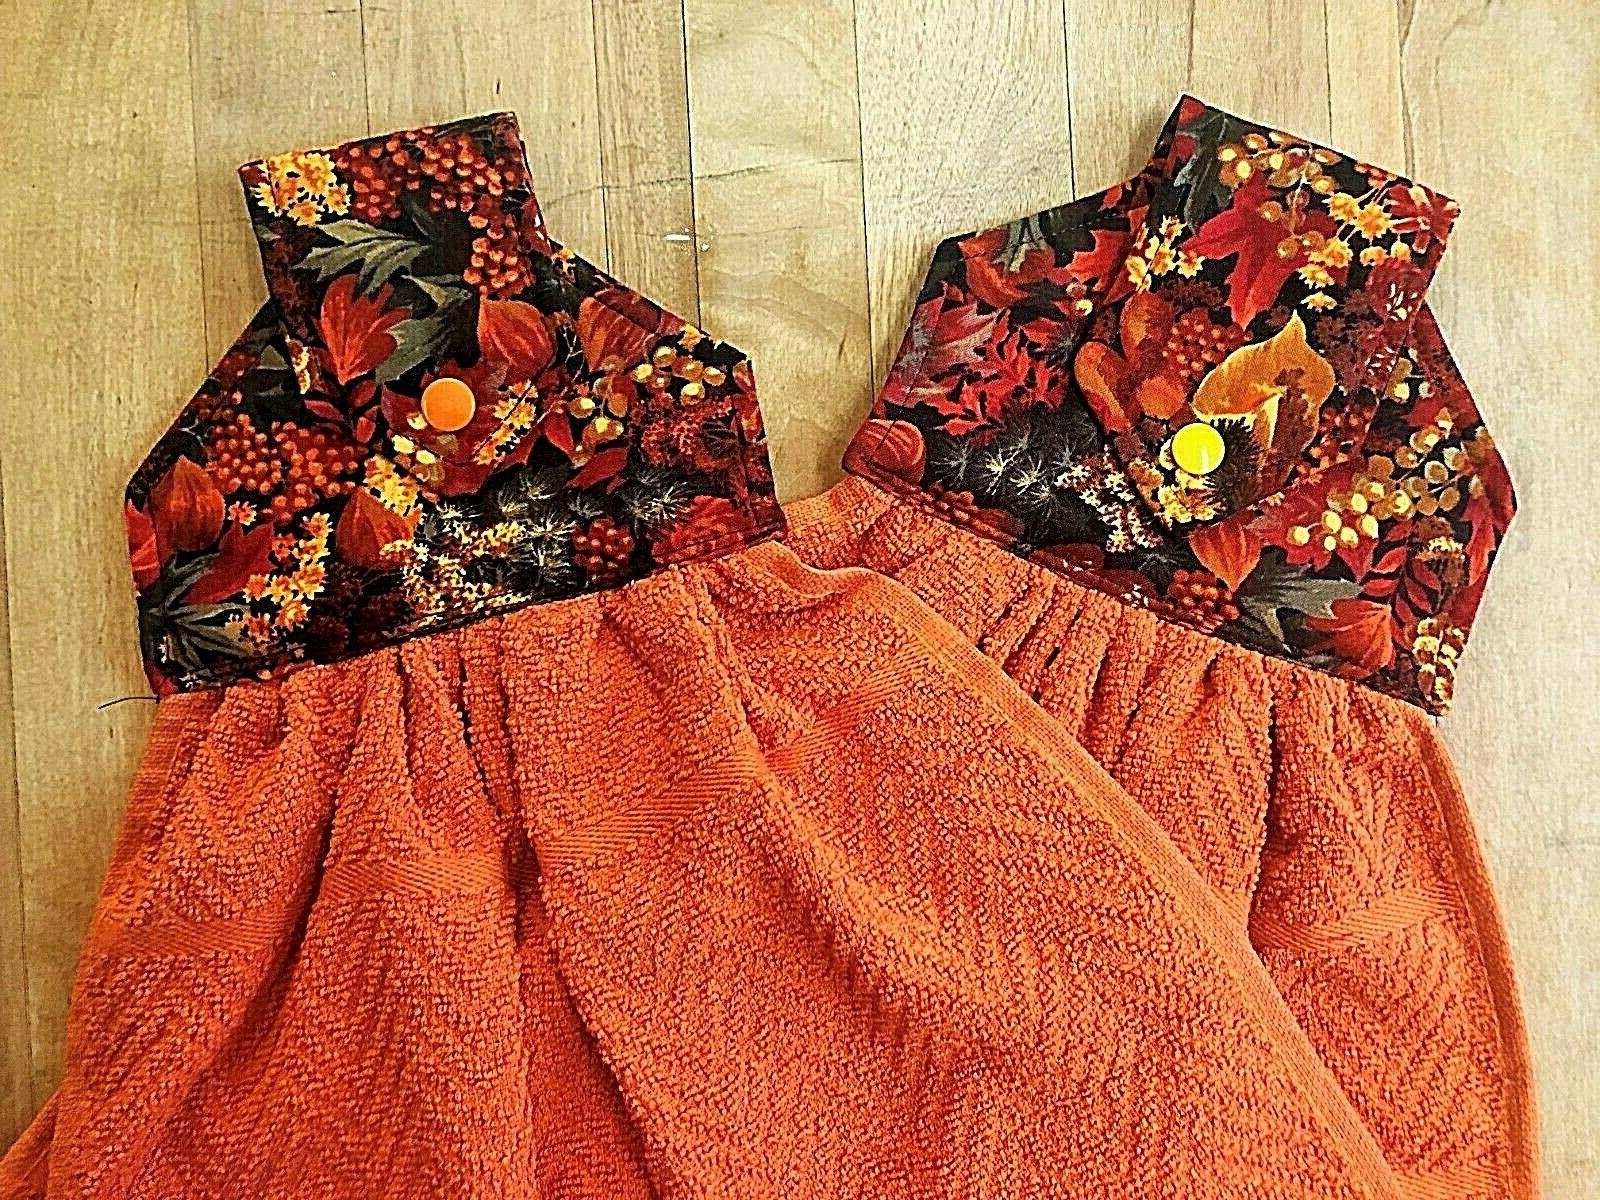 Harvest Fall Hanging Kitchen Towels, Towels,